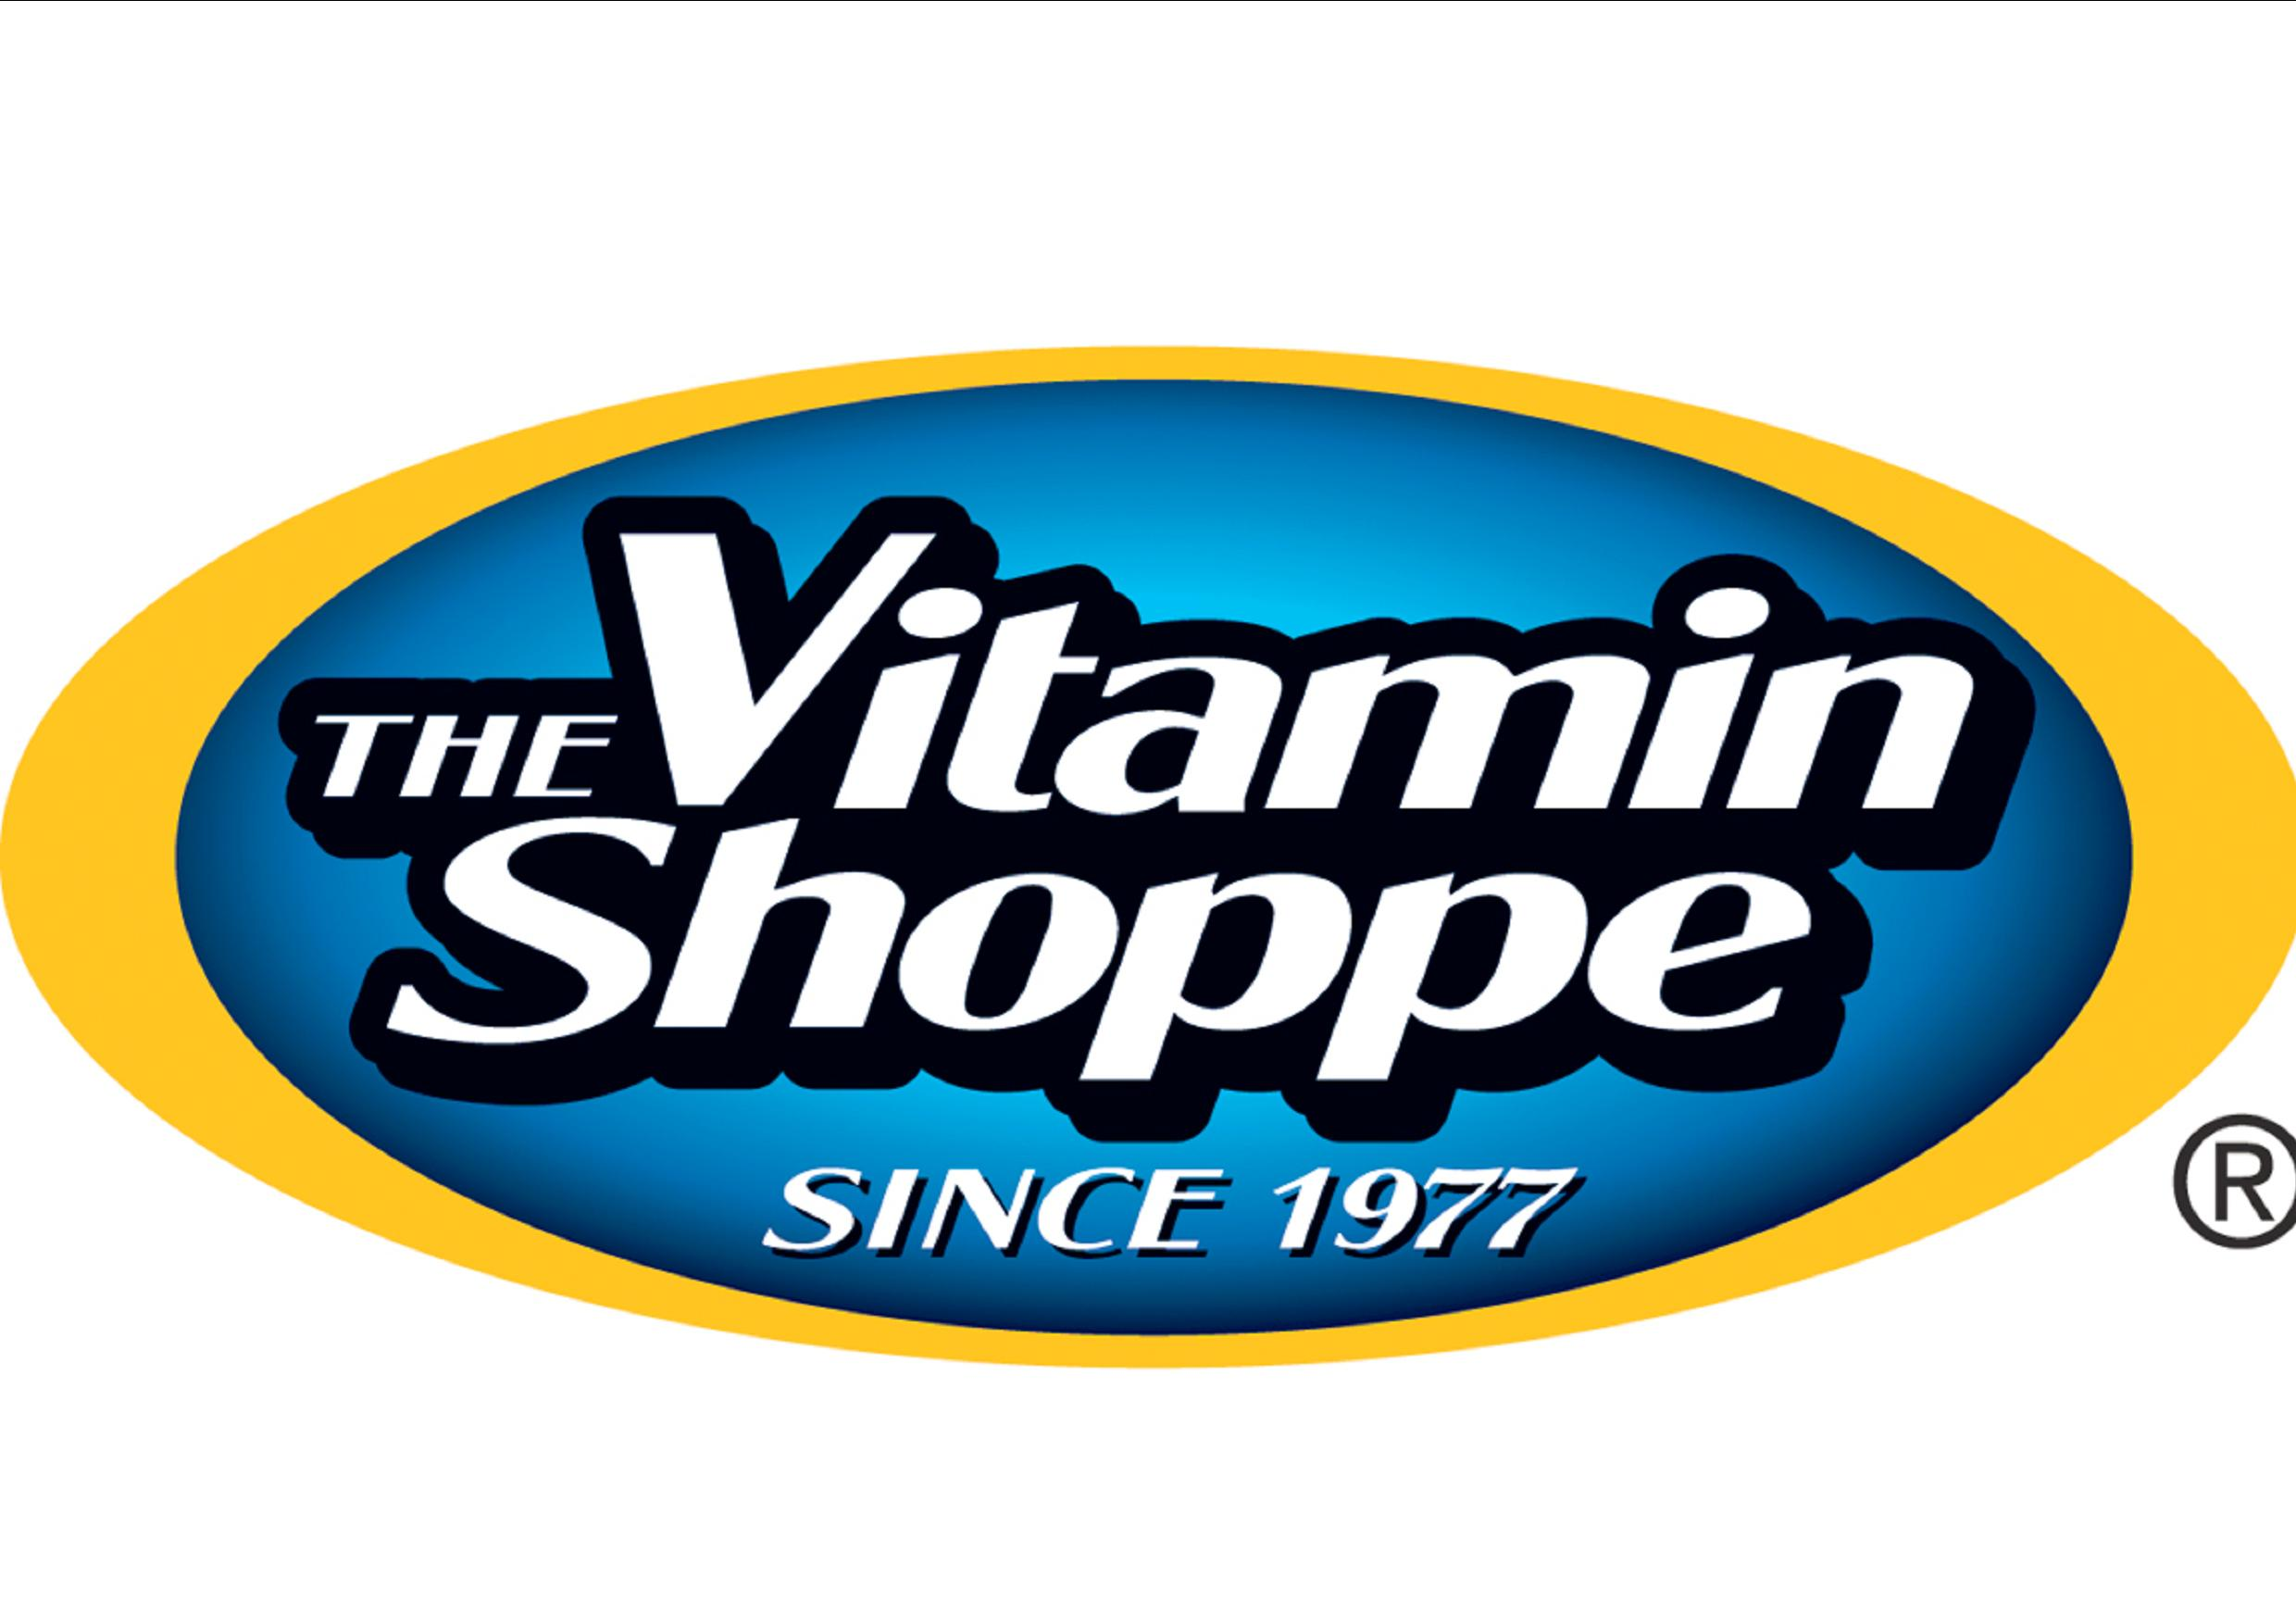 photo relating to Vitamin Shoppe Printable Coupon titled Find out People Vitamin Shoppe Promo Codes 2019 Swypeout